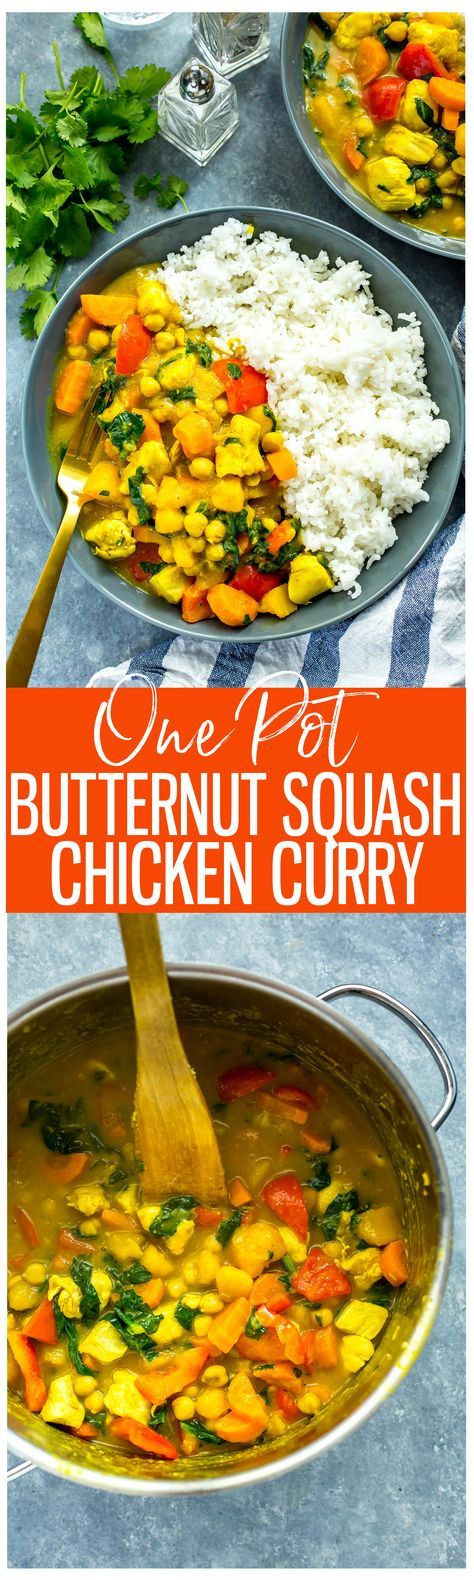 This One Pot Butternut Squash Chicken Curry with coconut milk & chickpeas is a protein-filled, heartwarming fall meal that comes together in under 40 minutes!